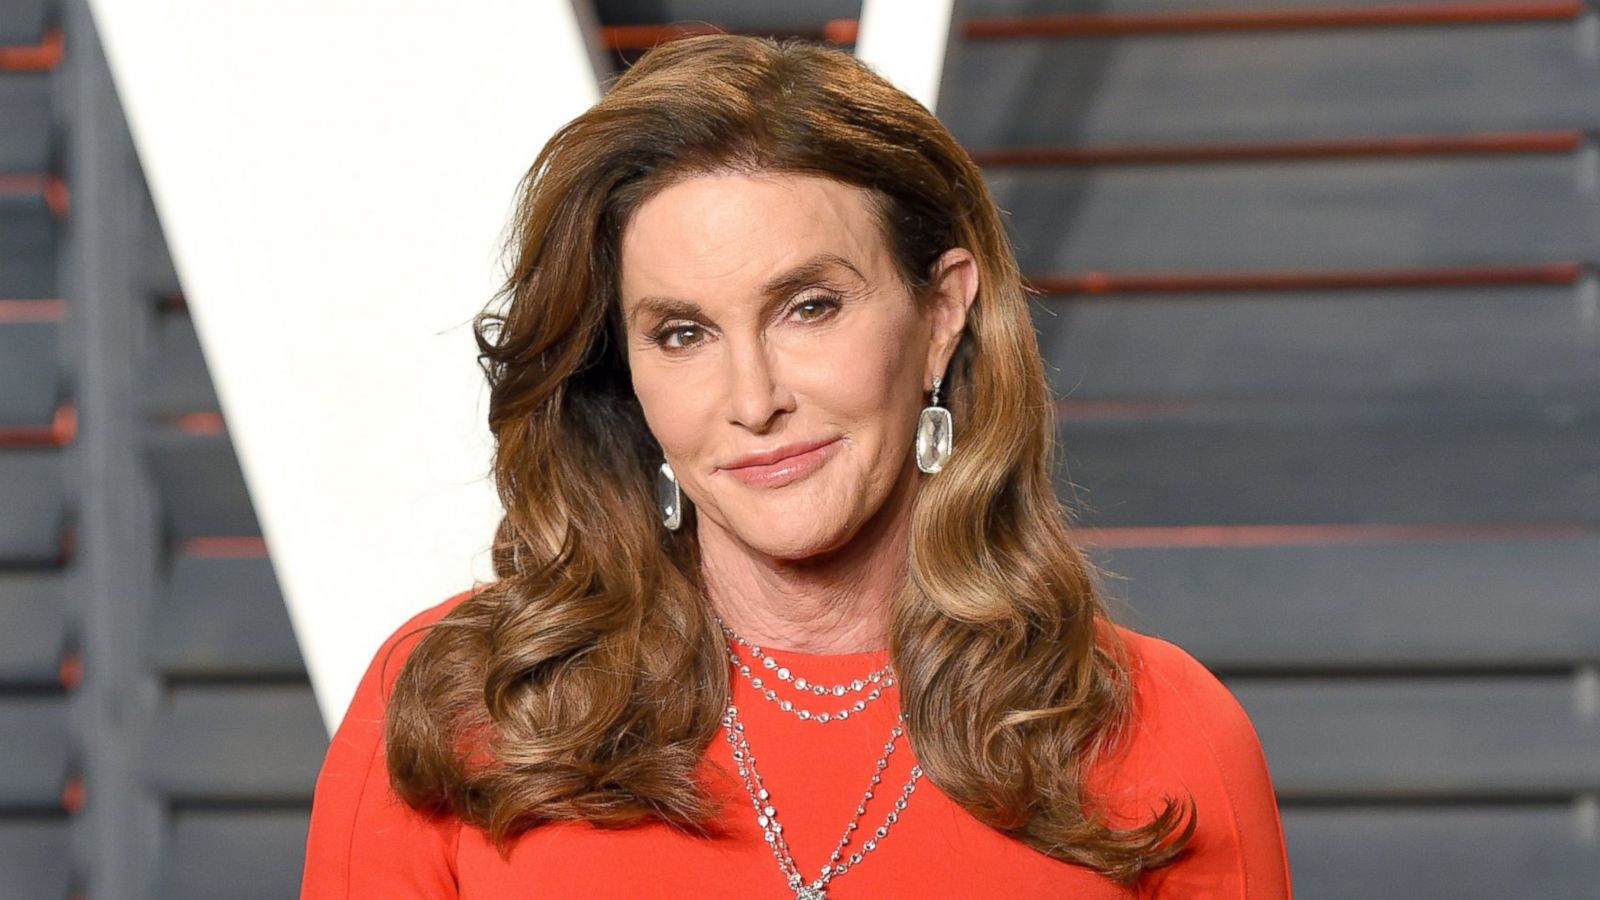 Caitlyn Jenner Wallpapers